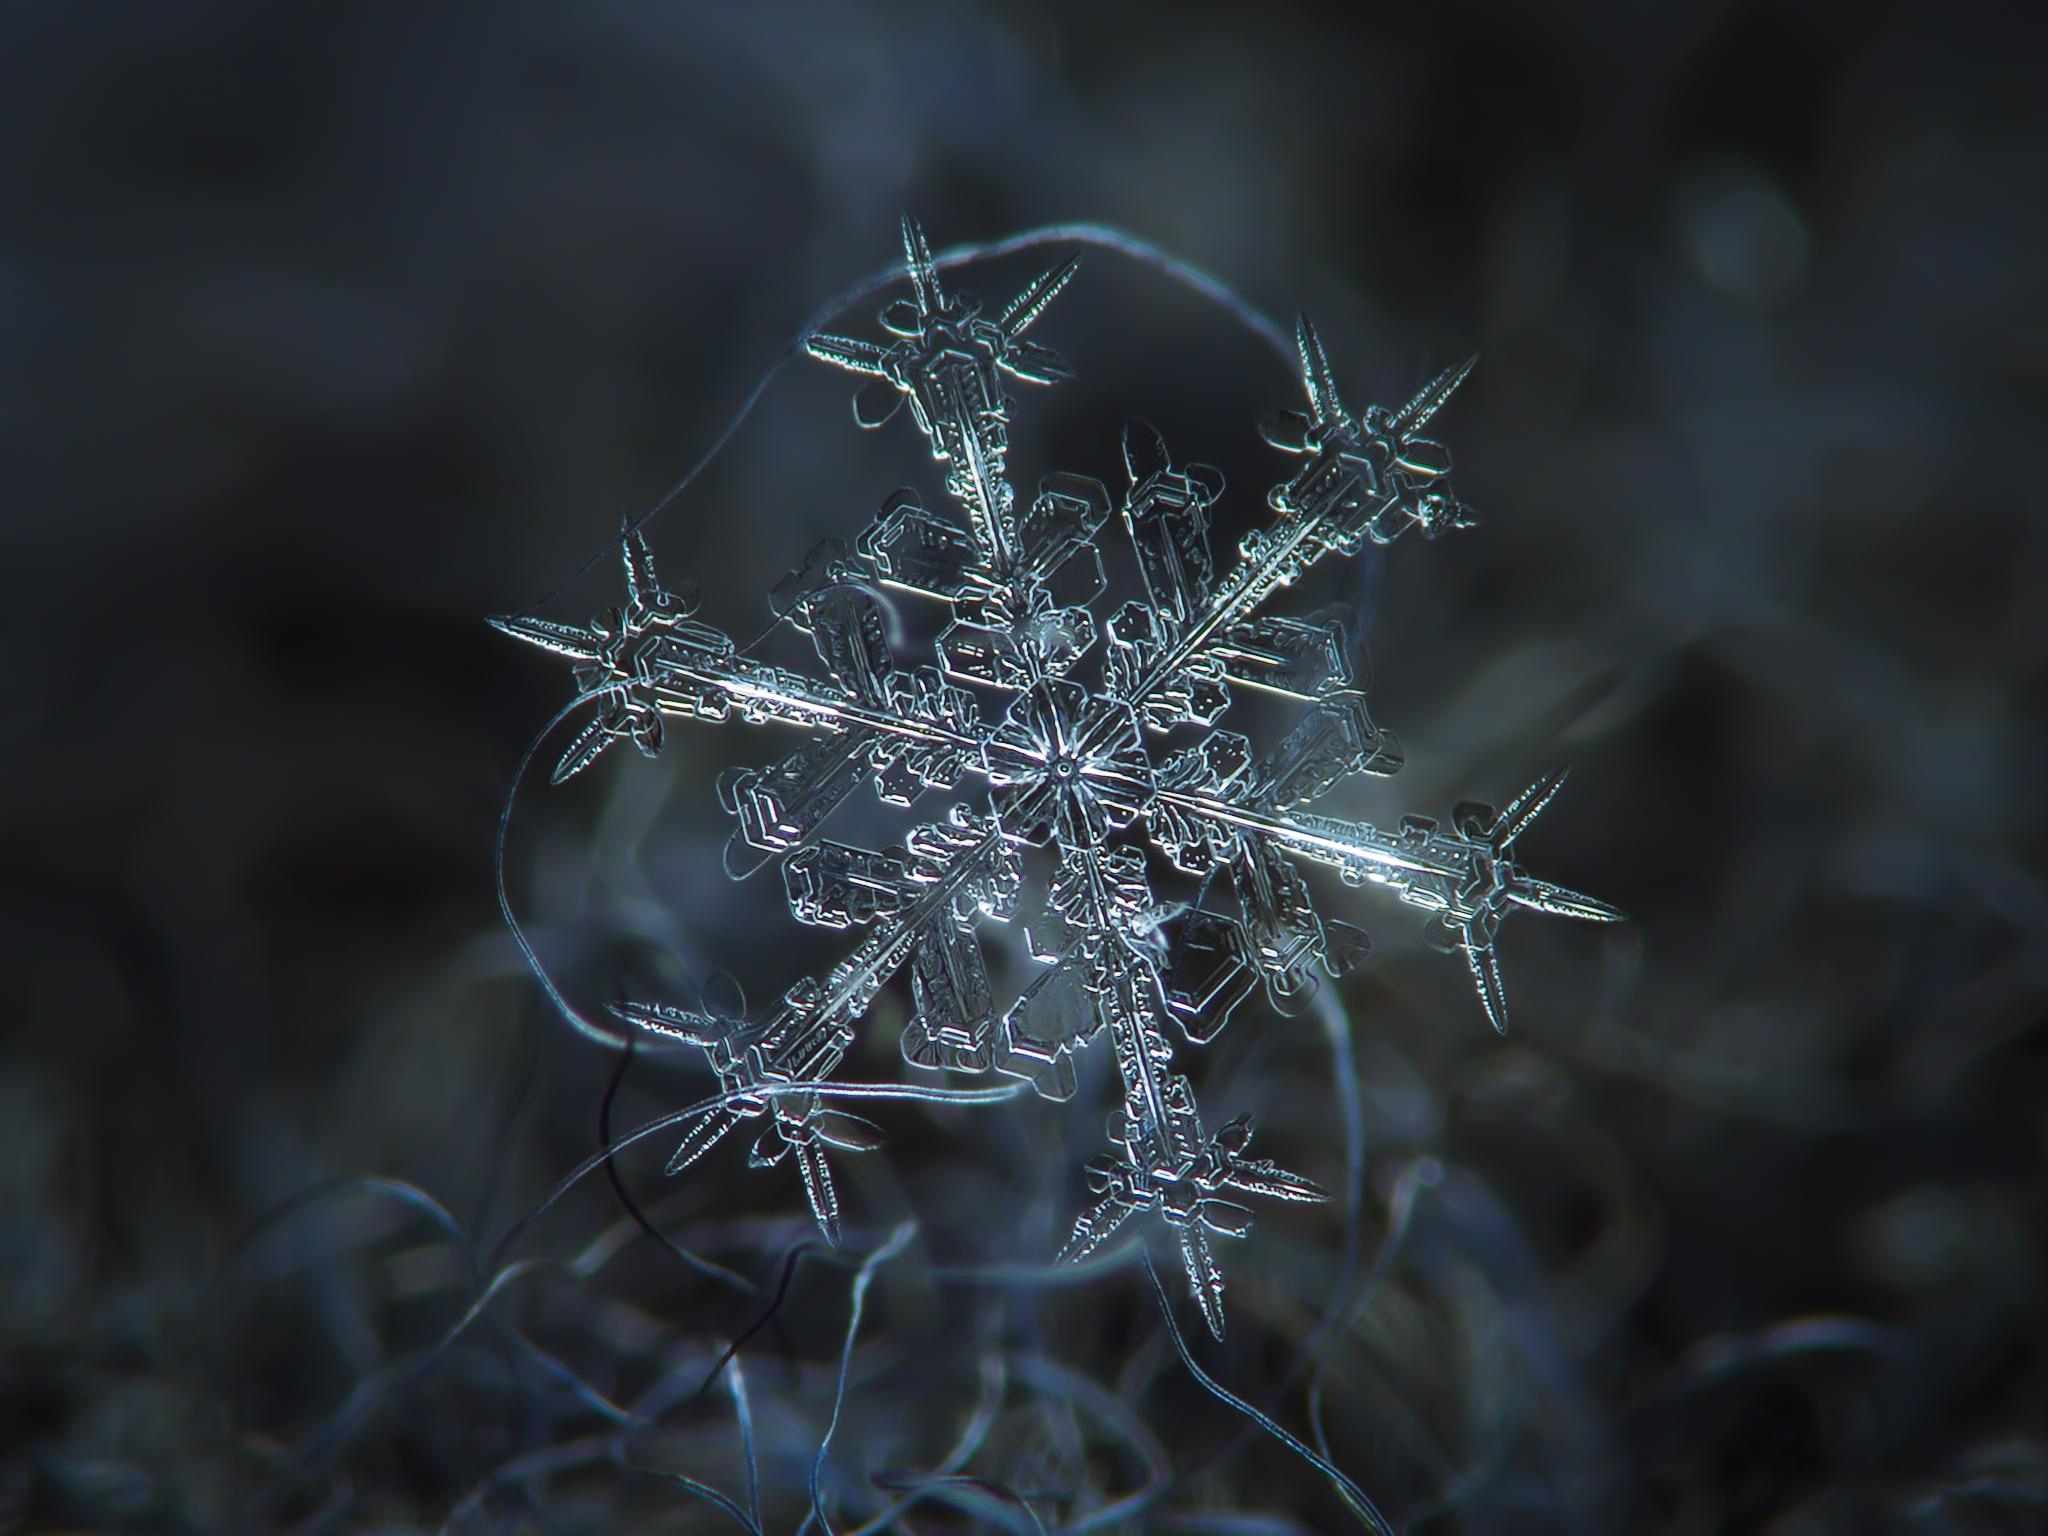 Alexey Kljatov- ChaoticMind75 – snowflake cristal macro photography